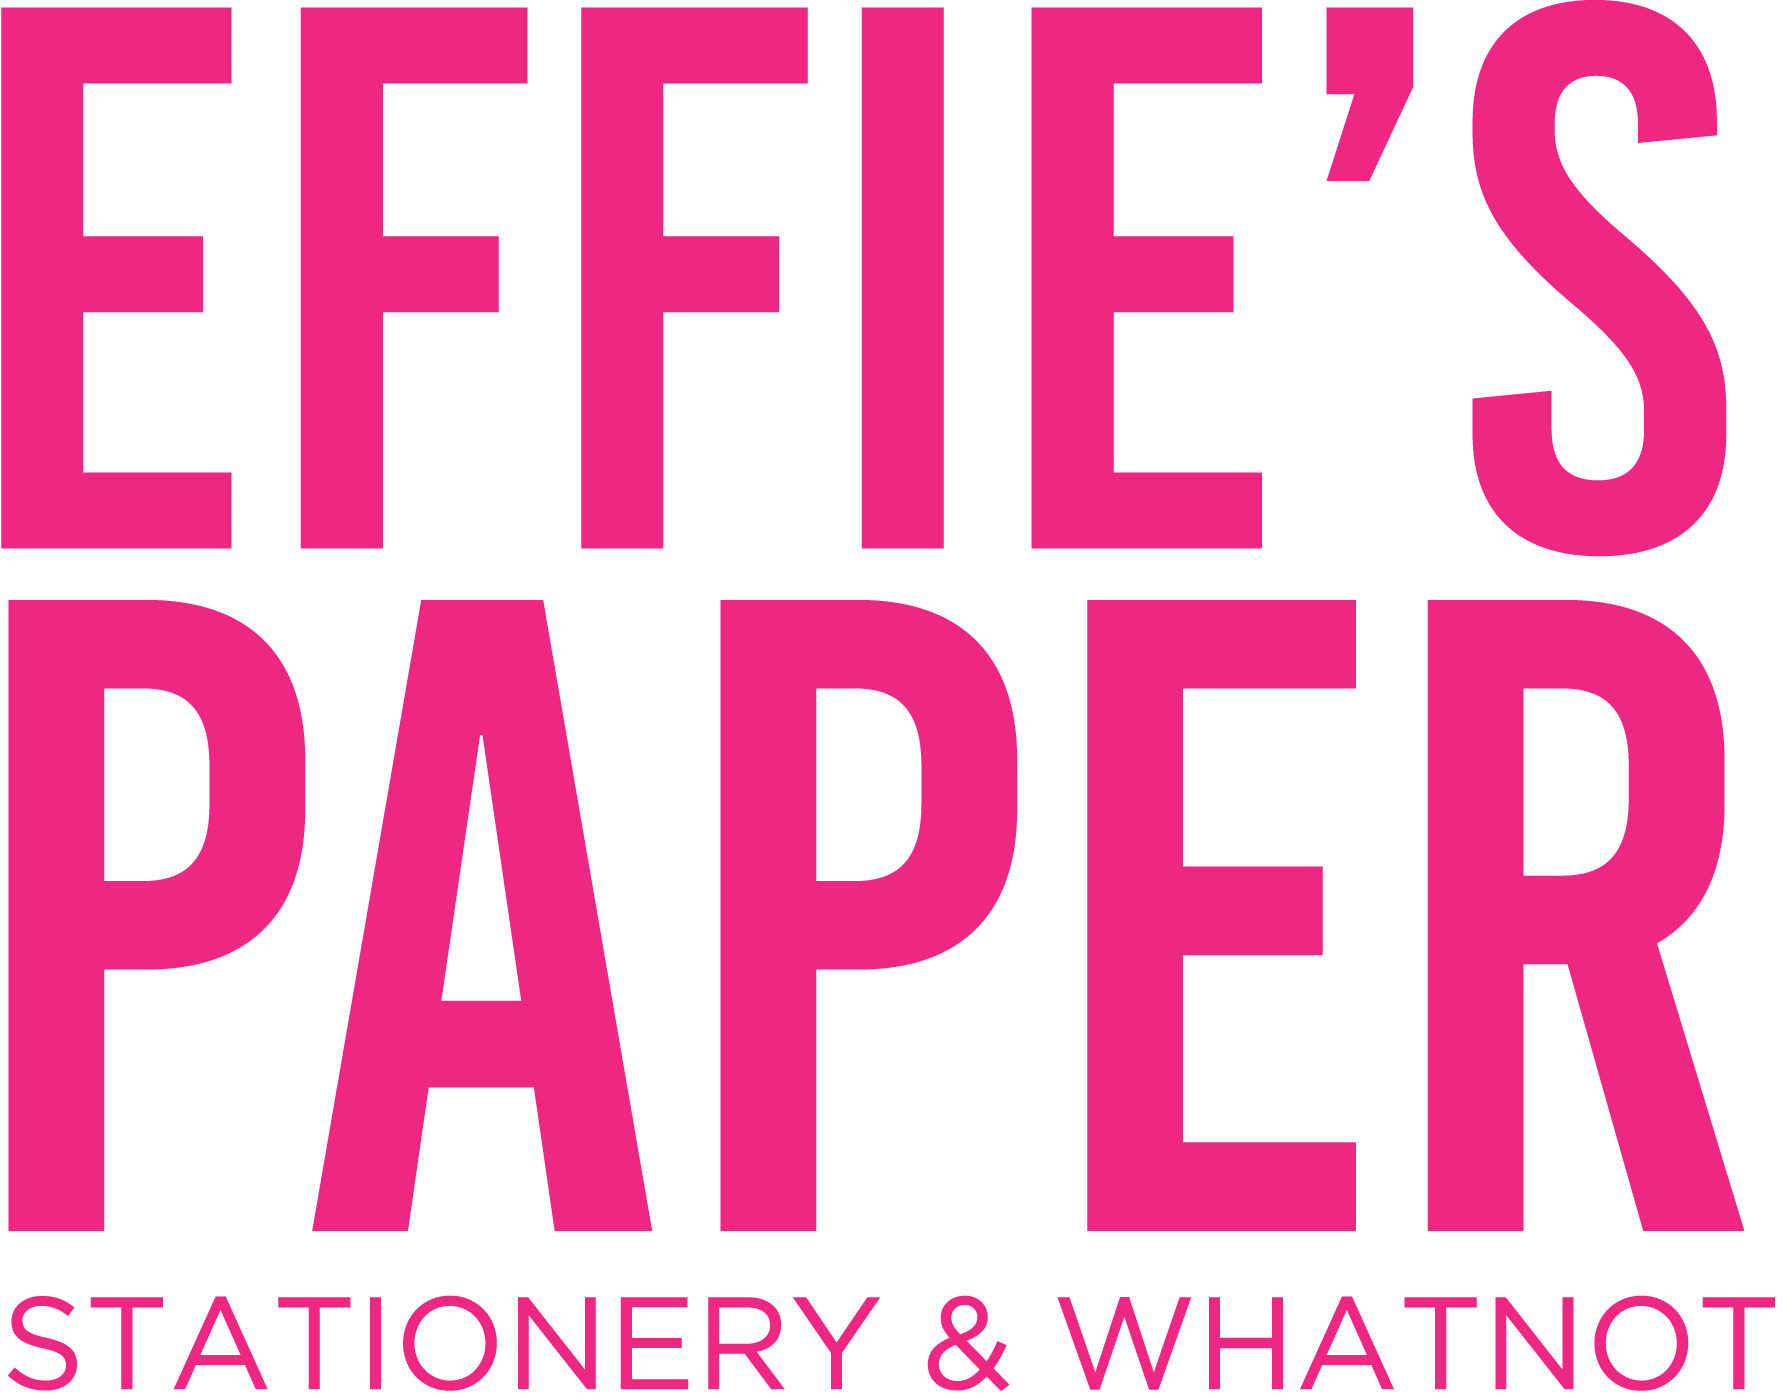 Effie's Paper::Stationery&Whatnot - Black Owned